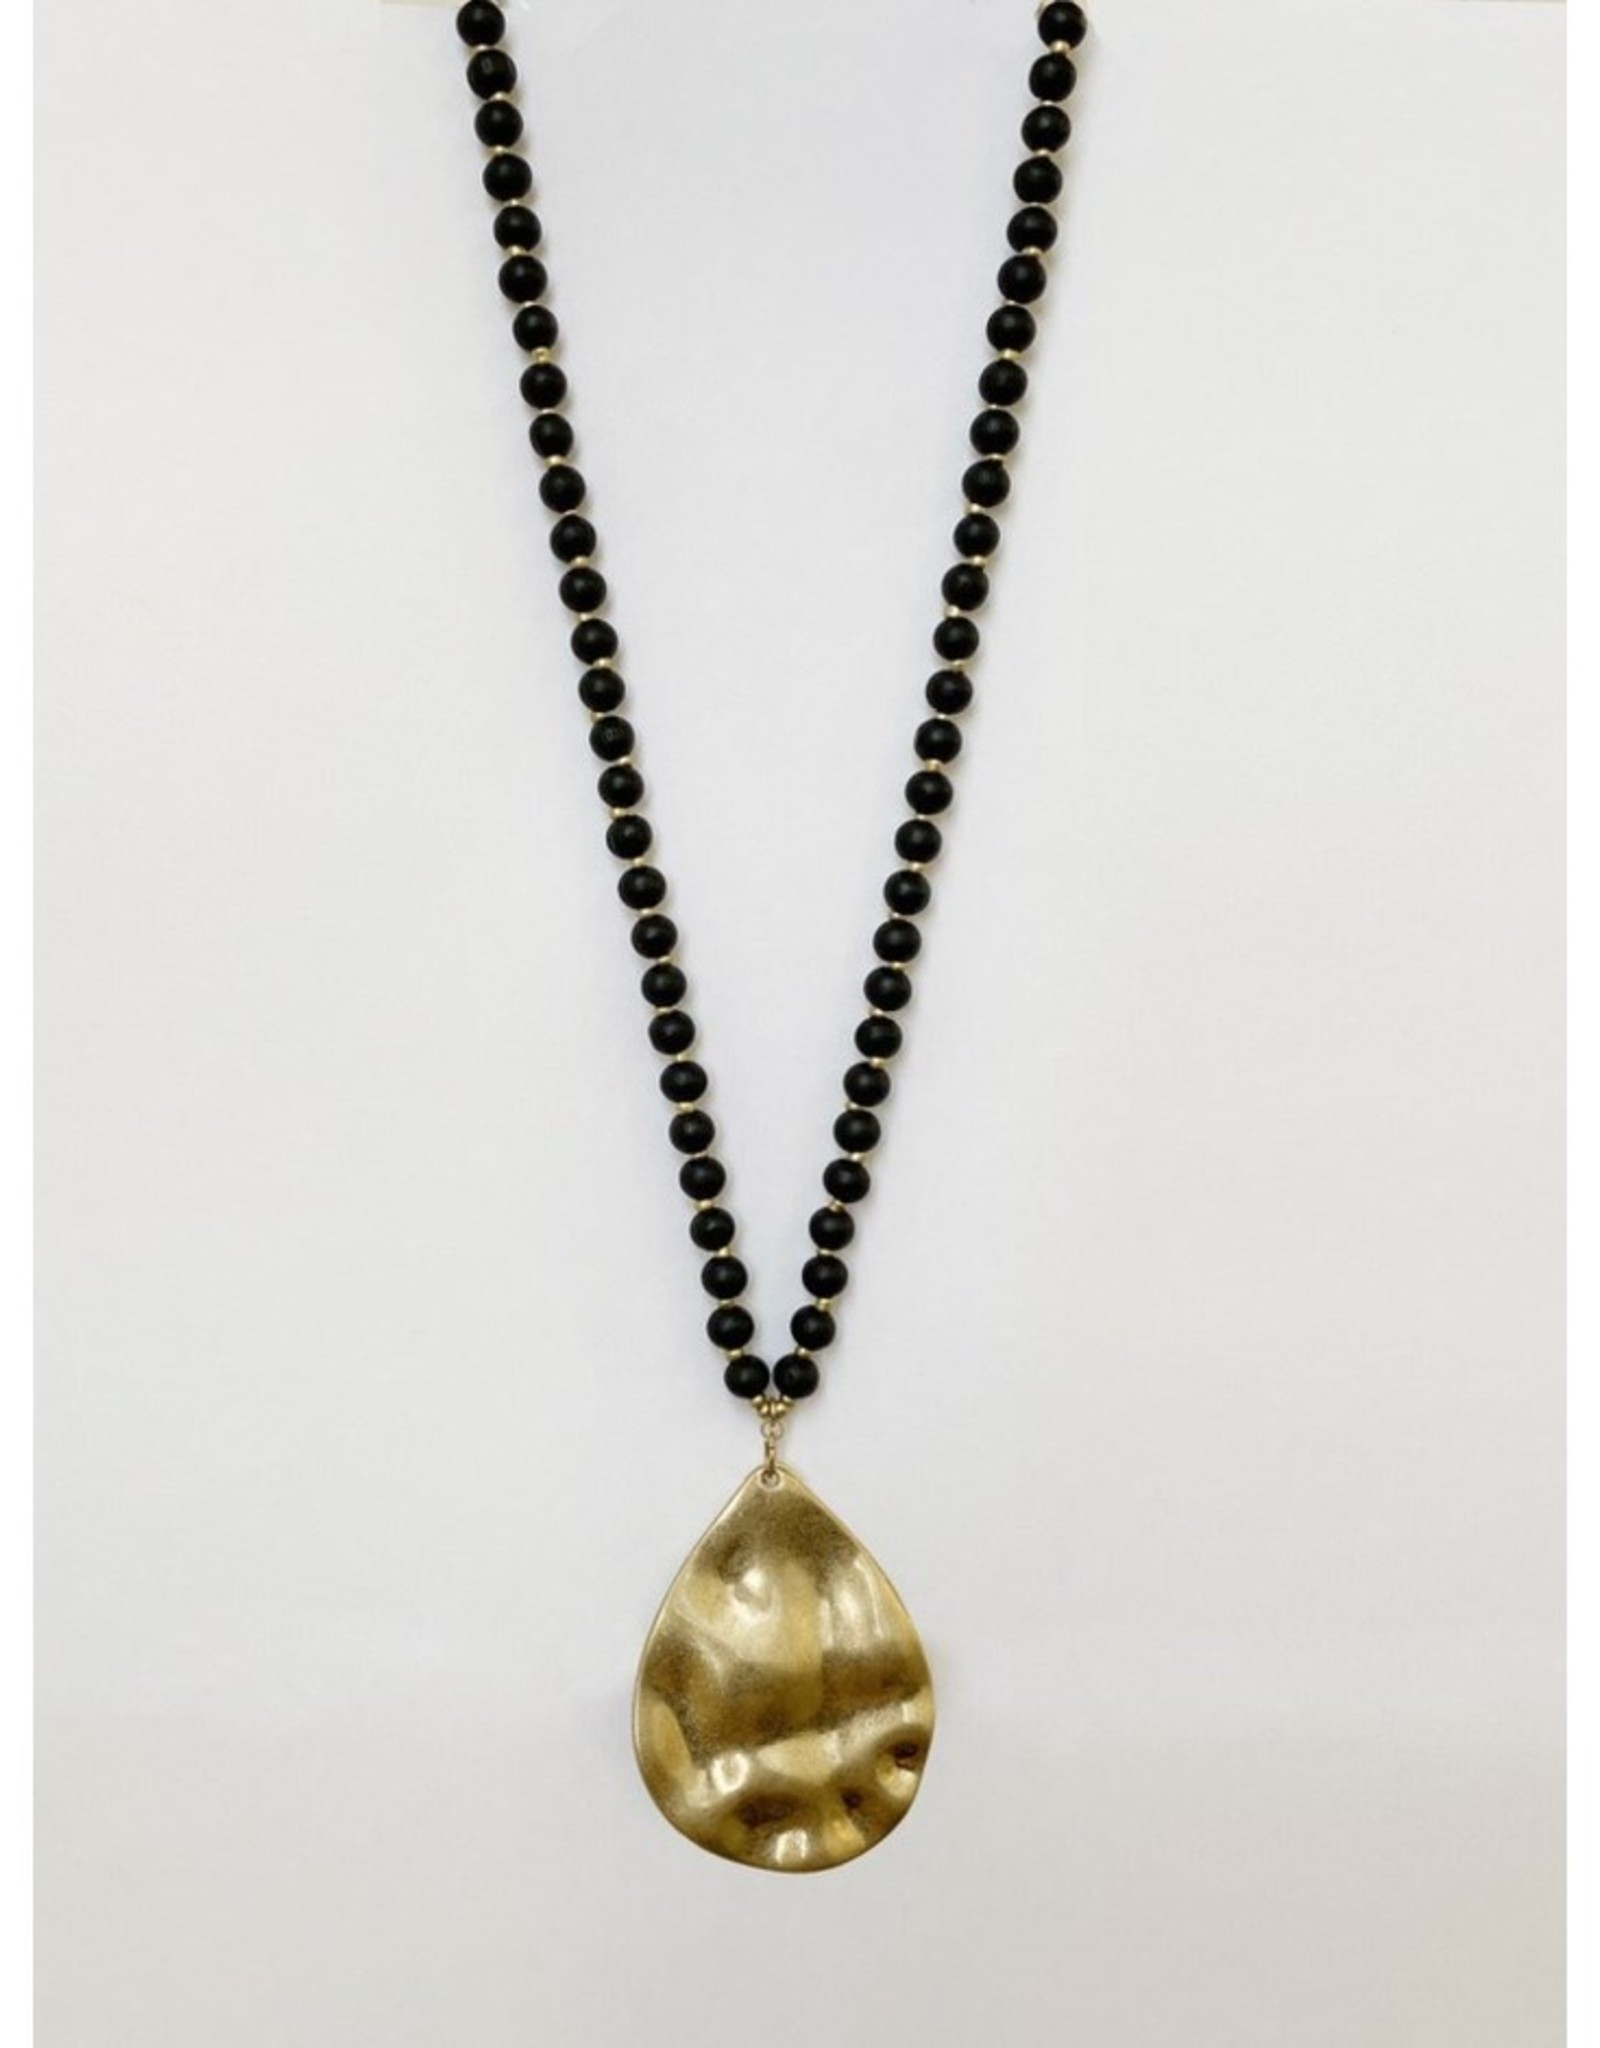 Long  Beaded Wooden Necklace with Worn Metal Pendant-black/gold